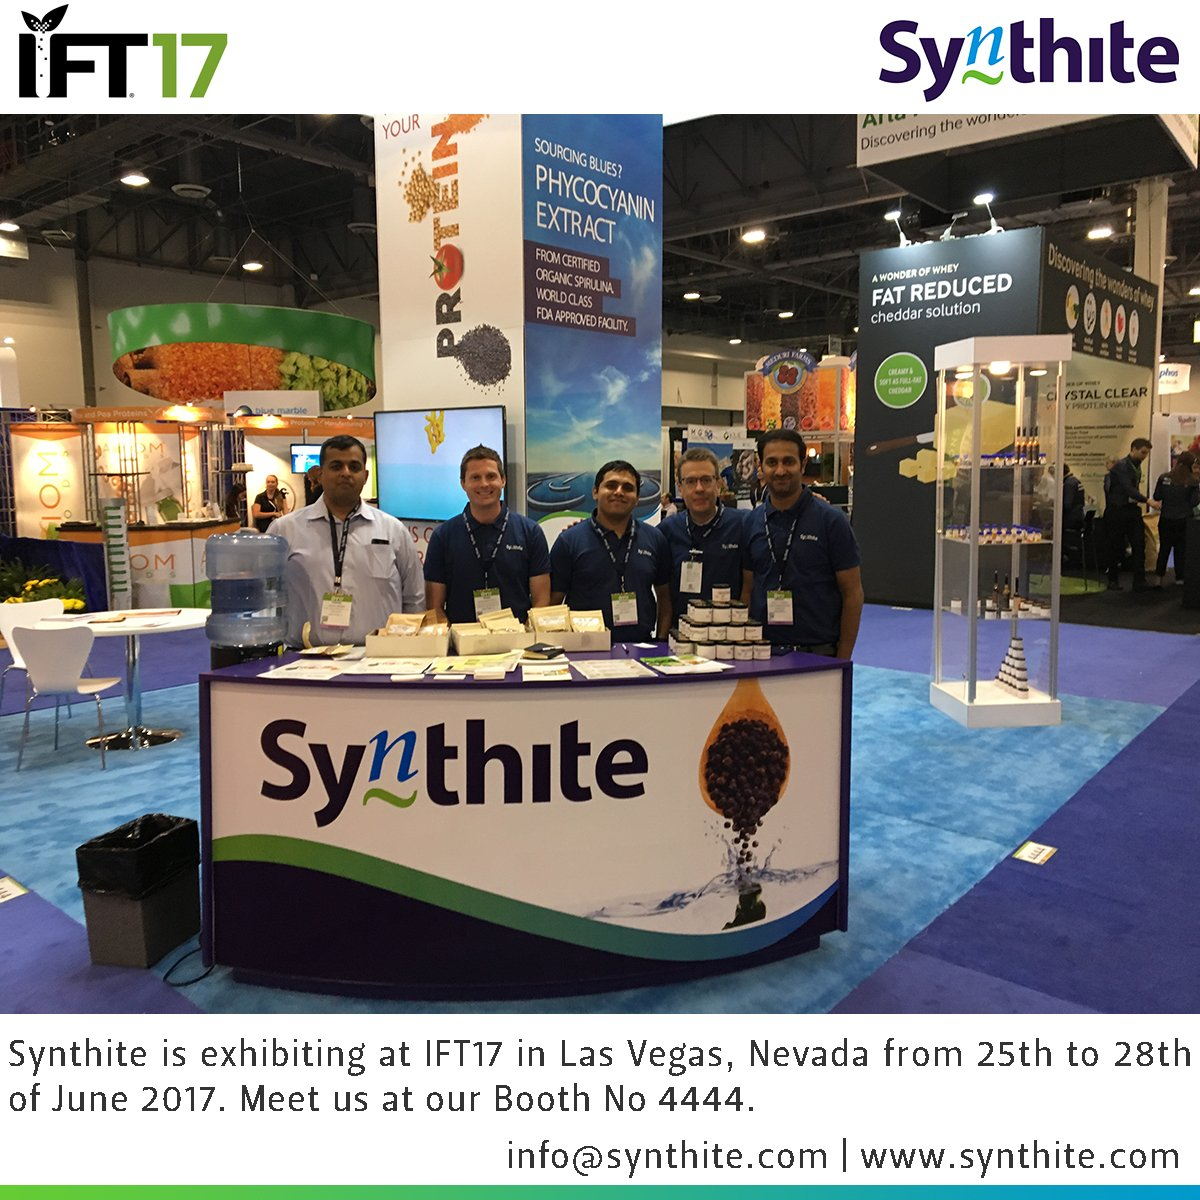 #Synthite is exhibiting at #IFT17 in Las Vegas, Nevada from 25th to 28th of June 2017. Meet us at our Booth No 4444.   #Spice #Oleoresin<br>http://pic.twitter.com/qiXxYCOje9